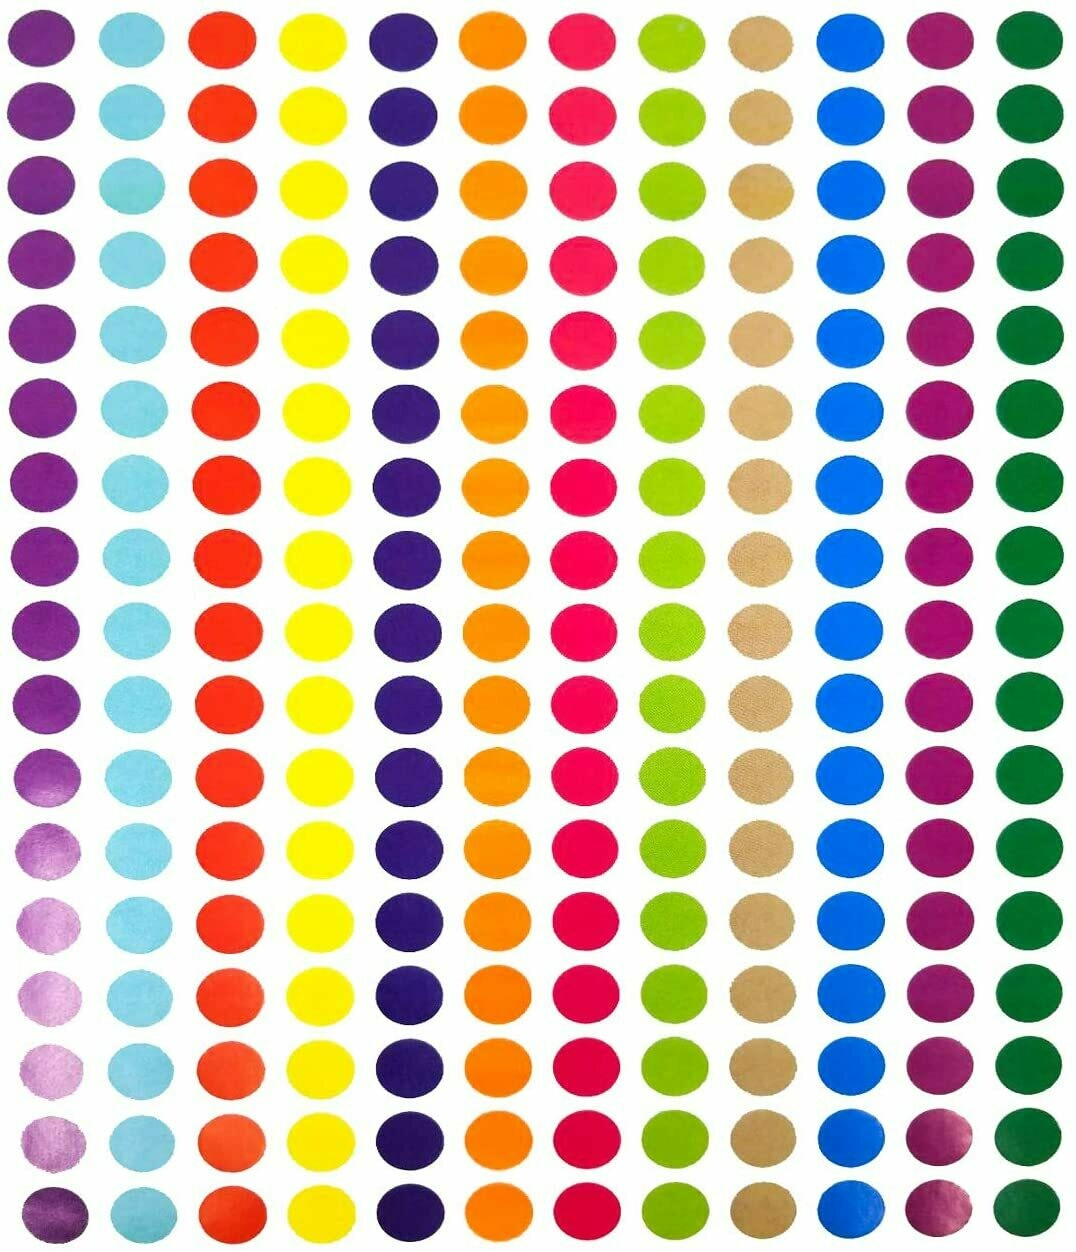 Tag-A-Room 1/2 Inch Round Color Coding Circle Dot Label Stickers, 12 Bright Colors, 8 1/2